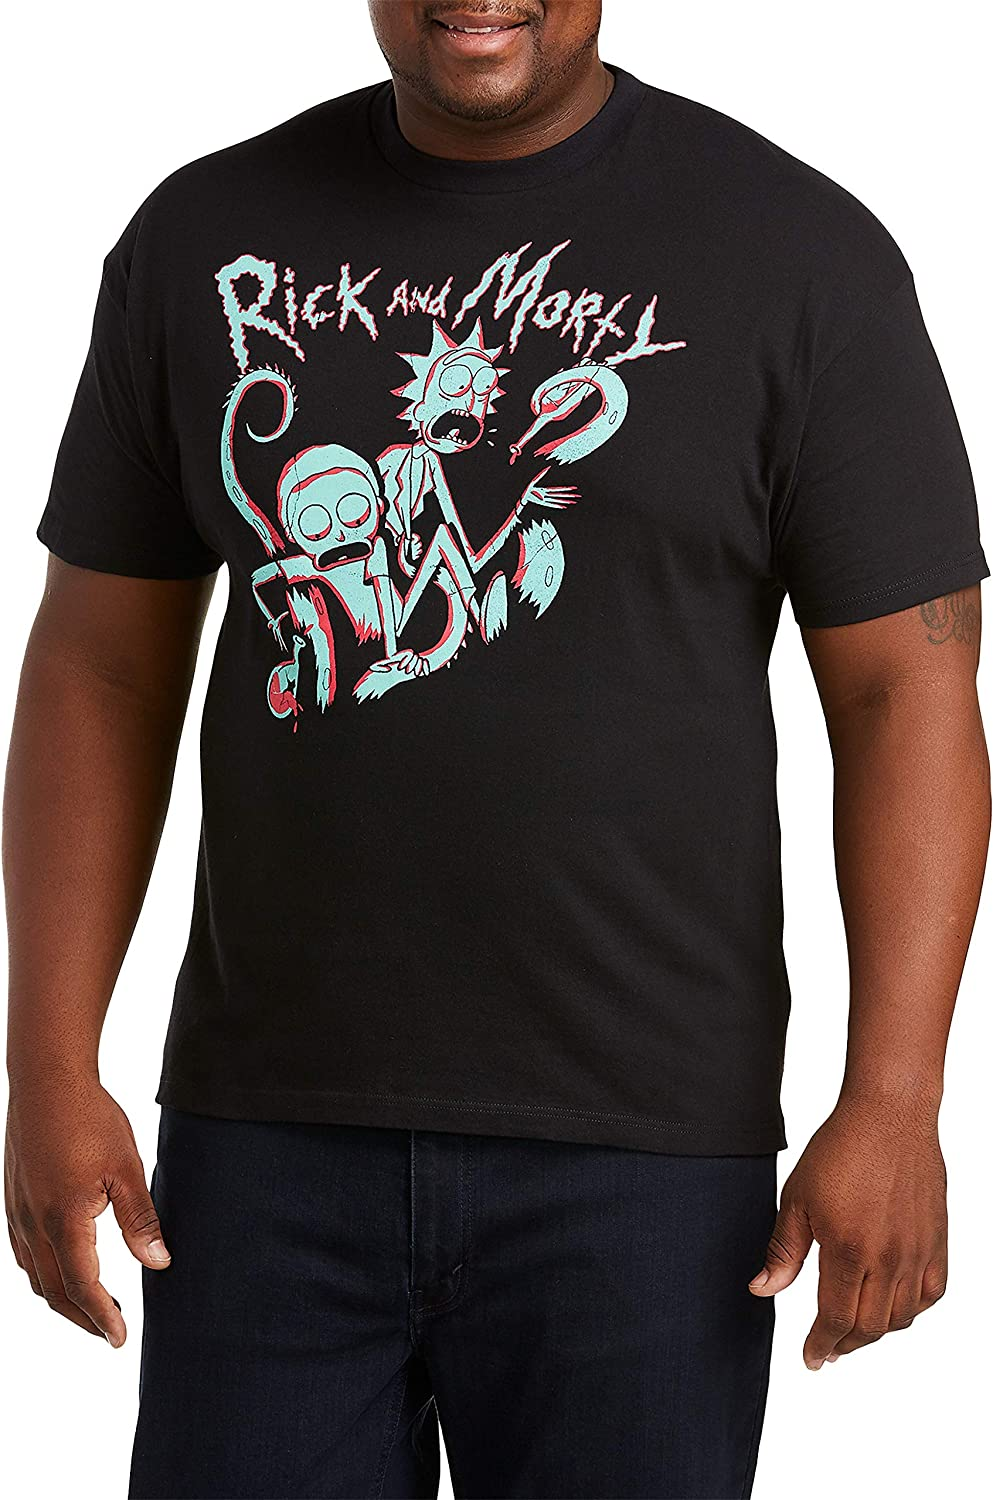 True Challenge the lowest price of Japan Jacksonville Mall Nation by DXL Big and Graphic Morty Cartoon Tall Rick T